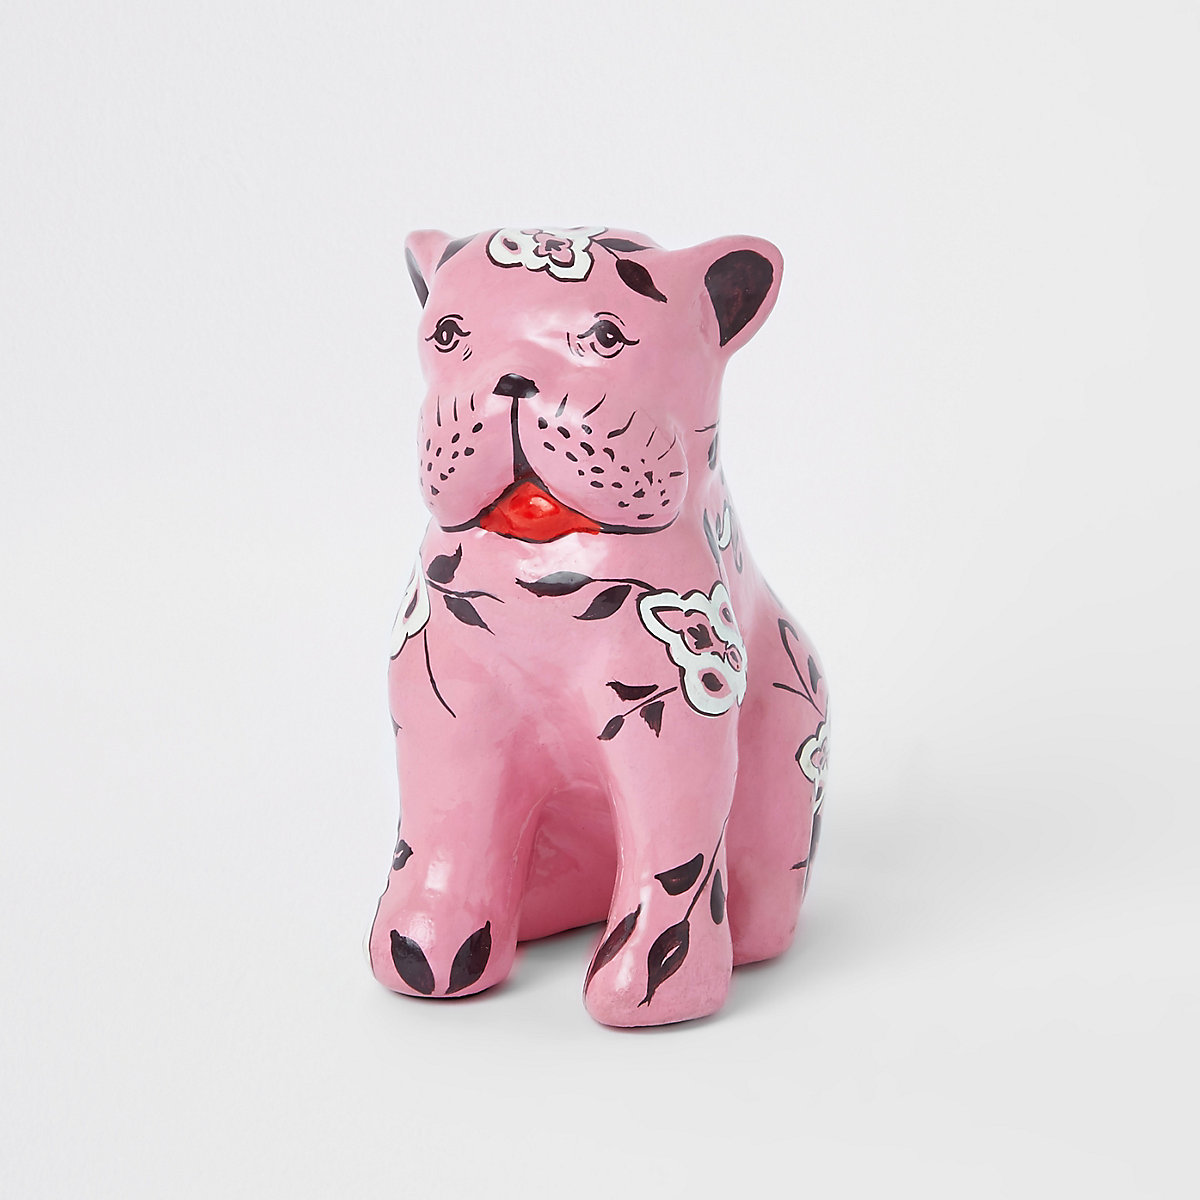 Pink french bull dog ornament